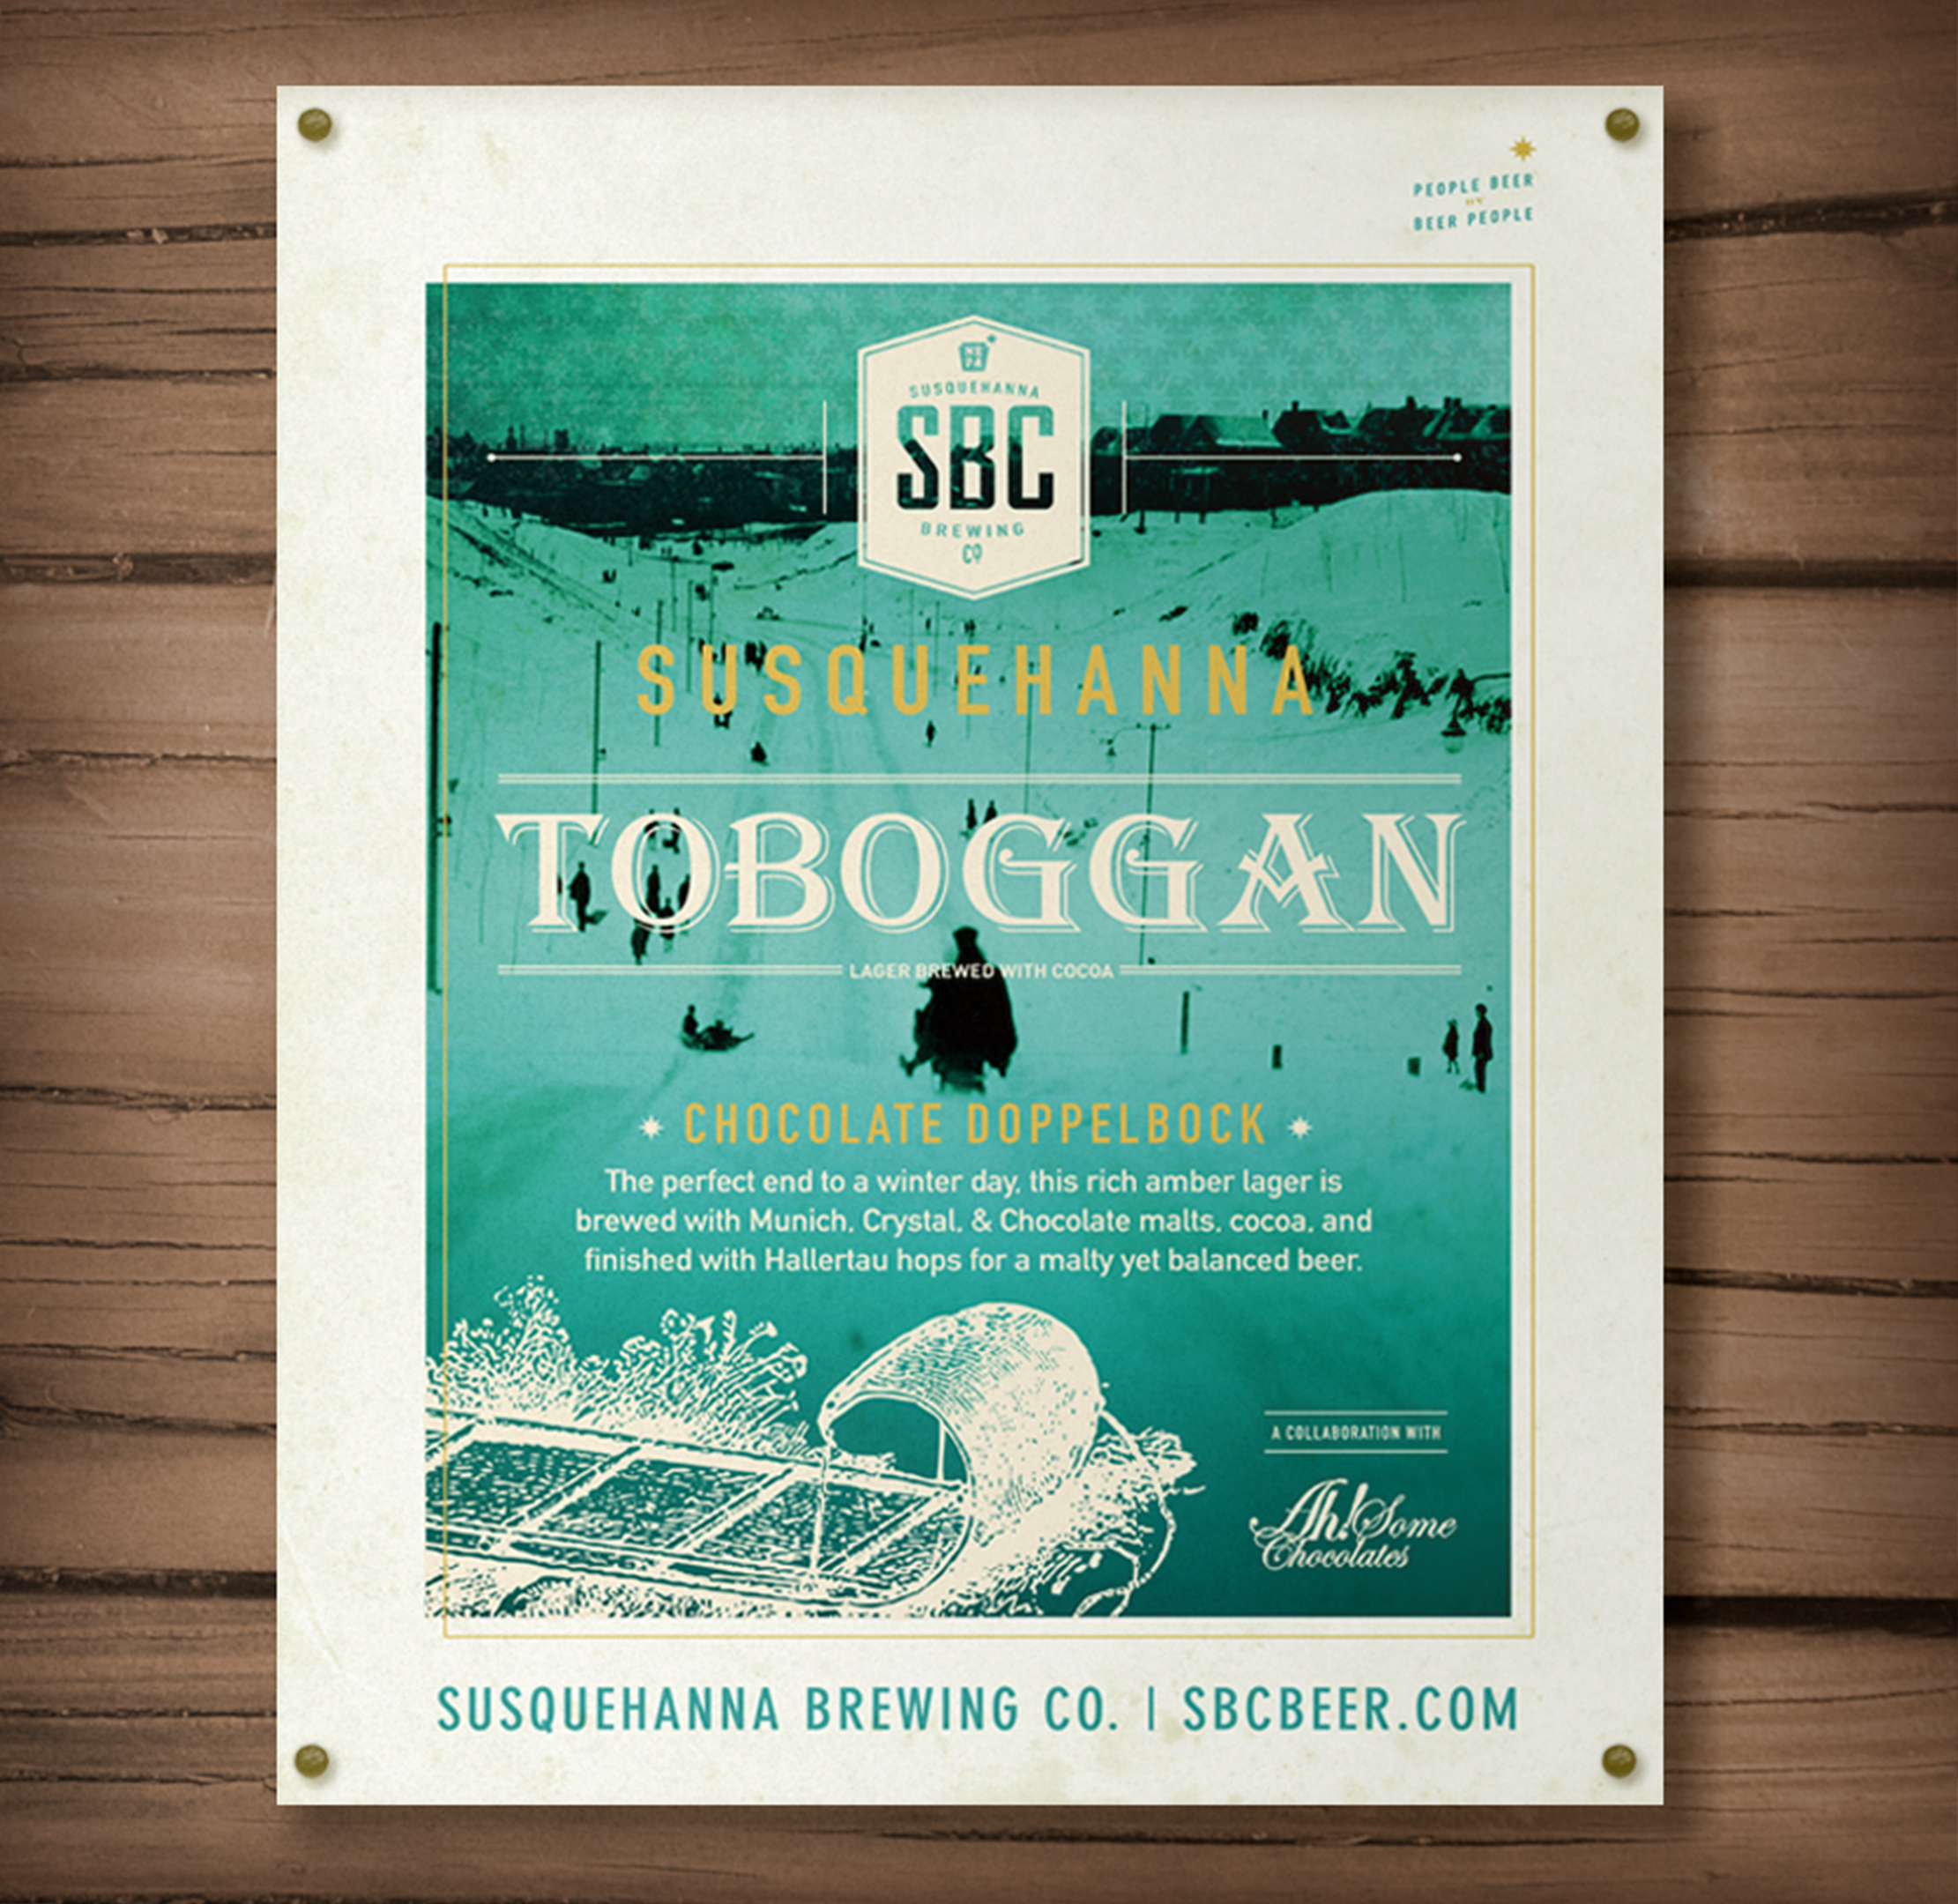 Susquehanna Brewing Co. Toboggan Chocolate Doppelbock Brand Poster Designed by Just Make Things